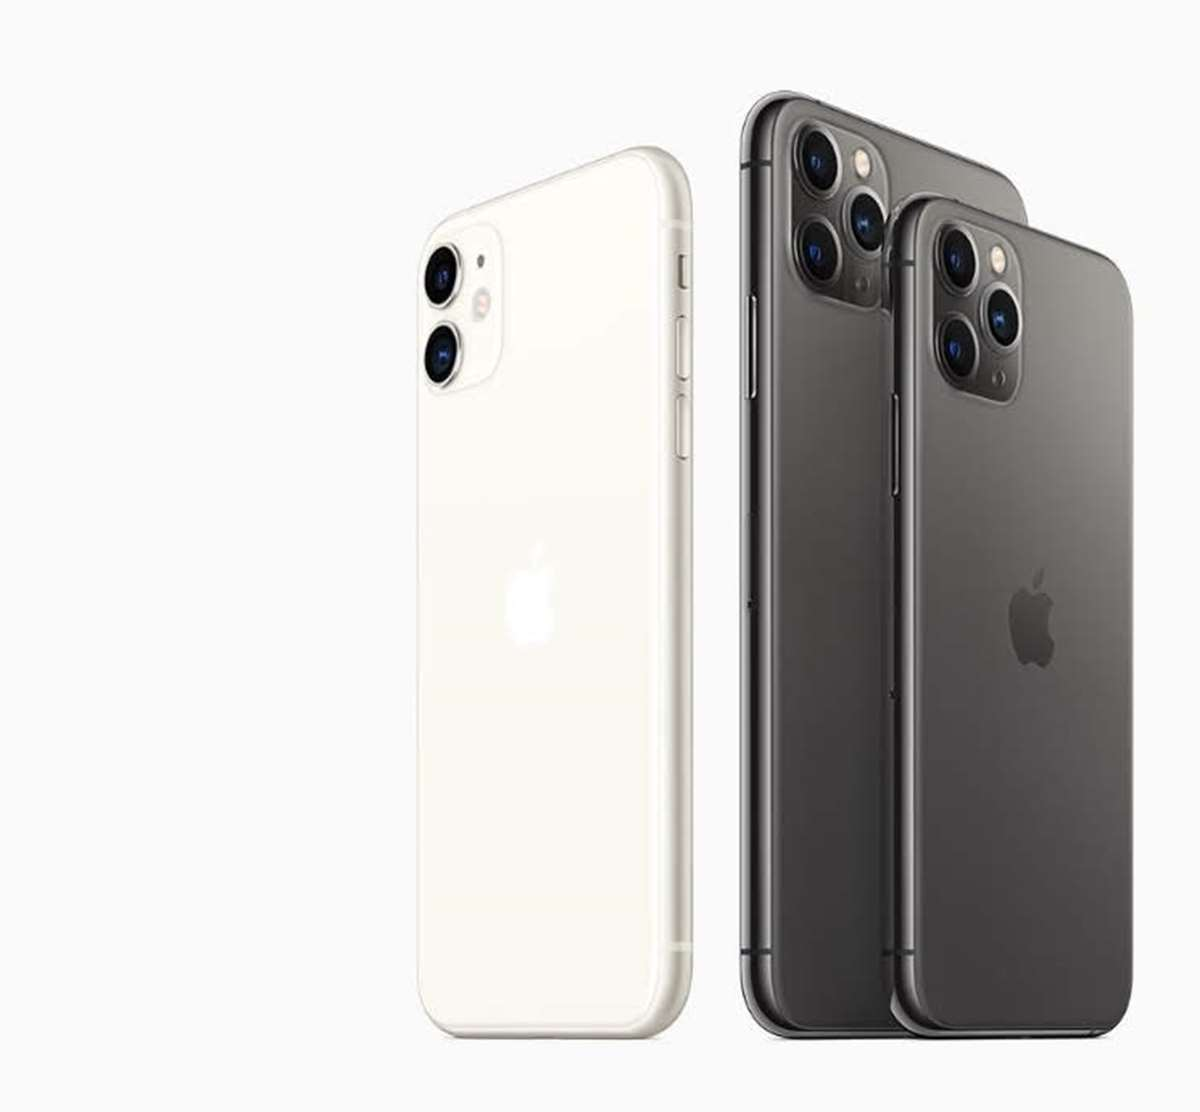 Apple se pone las pilas con el iPhone 11 y iPhone 11 Pro